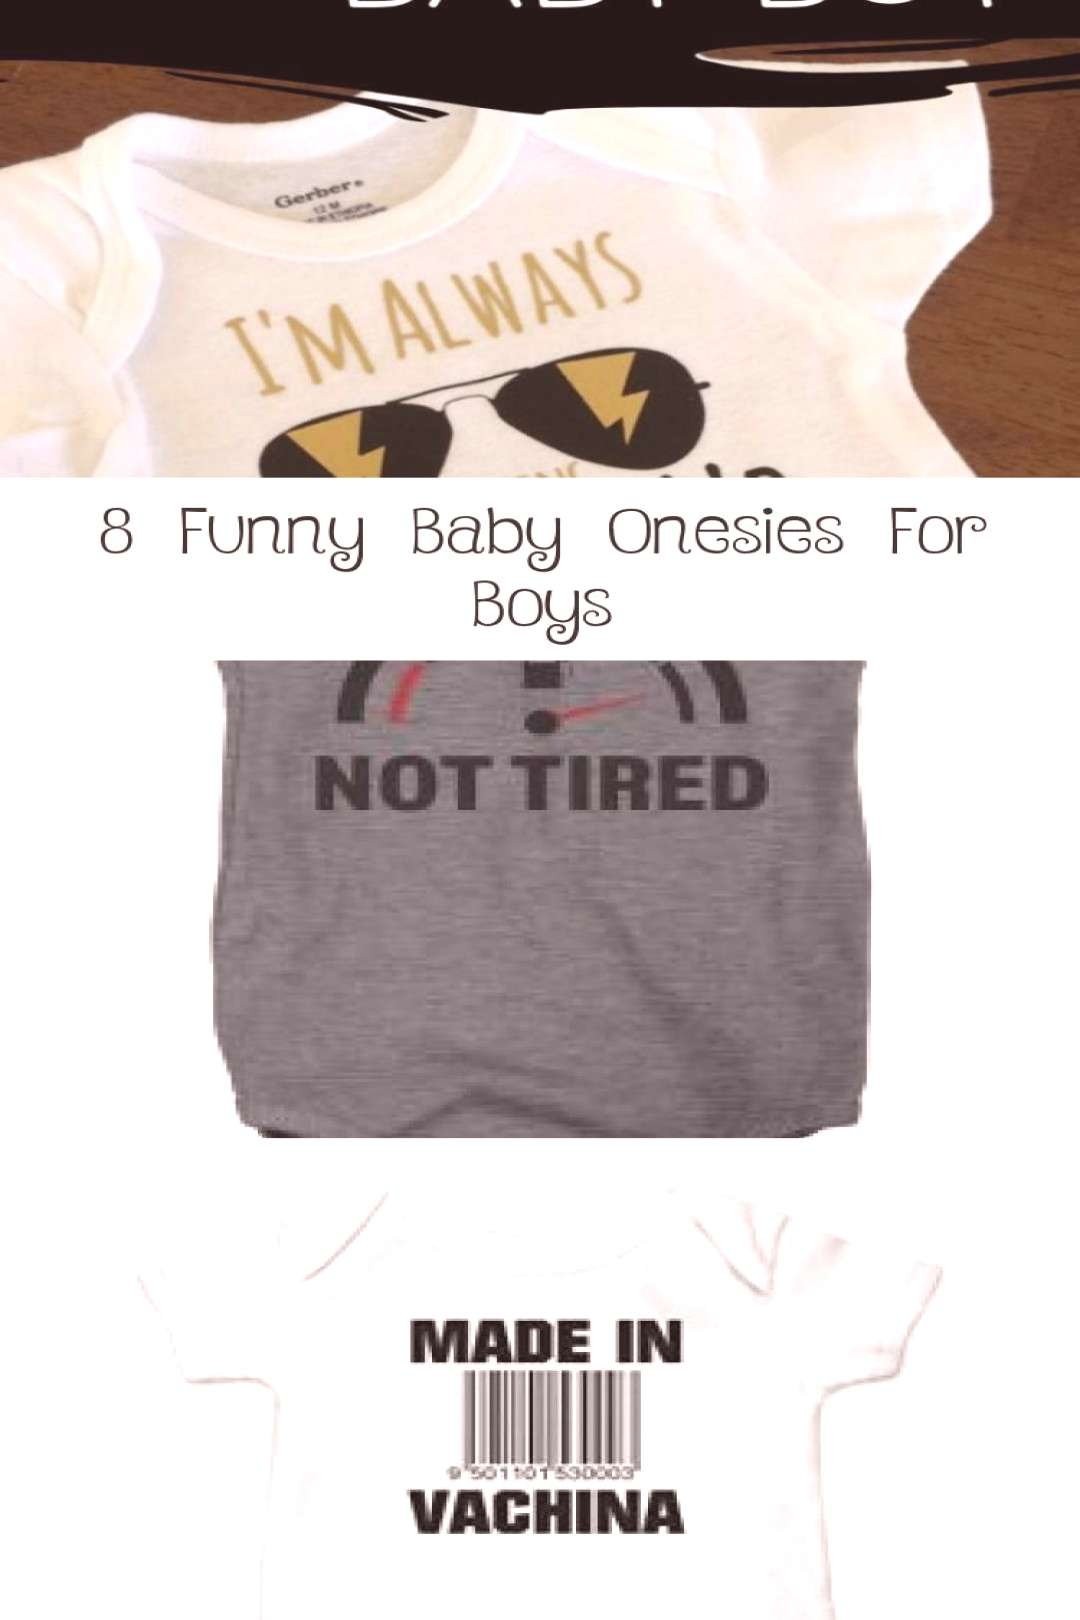 Funny Onesies For Boys Hilarious ` Funny Onesies For Boys funny onesies for boys hilarious * funny